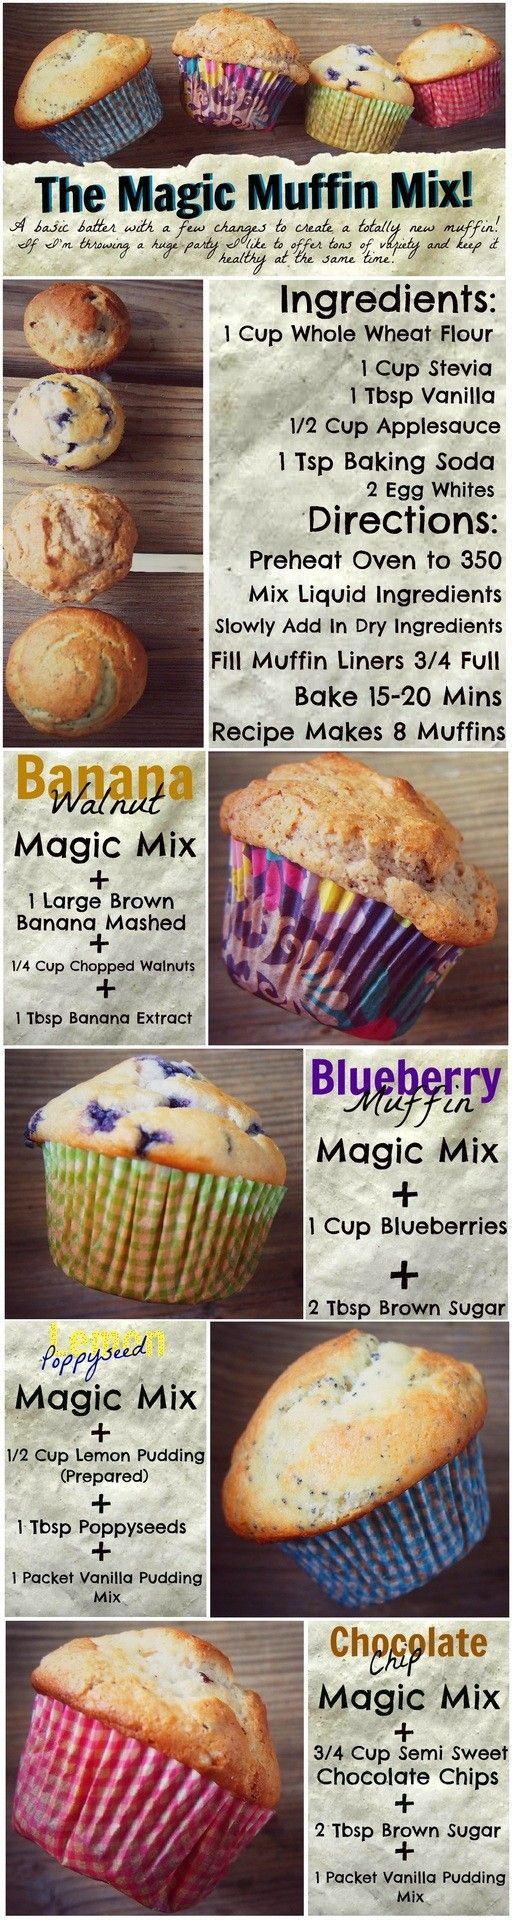 Magic Muffin mix - can be modified to work for multiple flavors via onewomenshaven